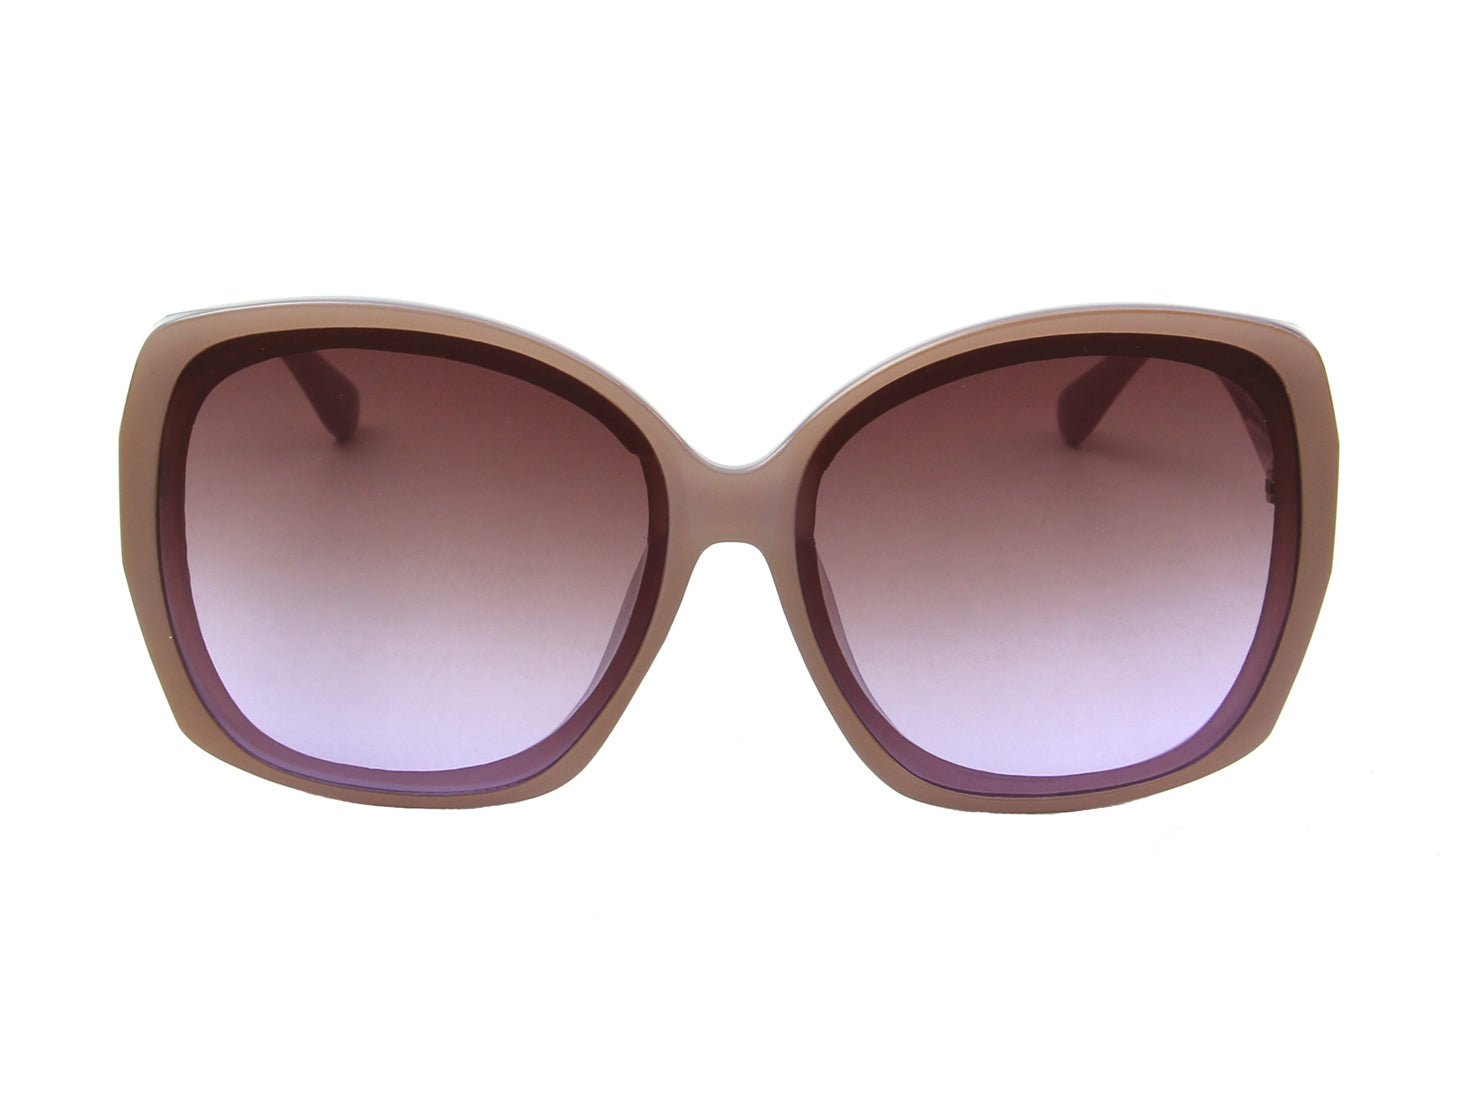 S1140 - Women Square Cat Eye Fashion Sunglasses